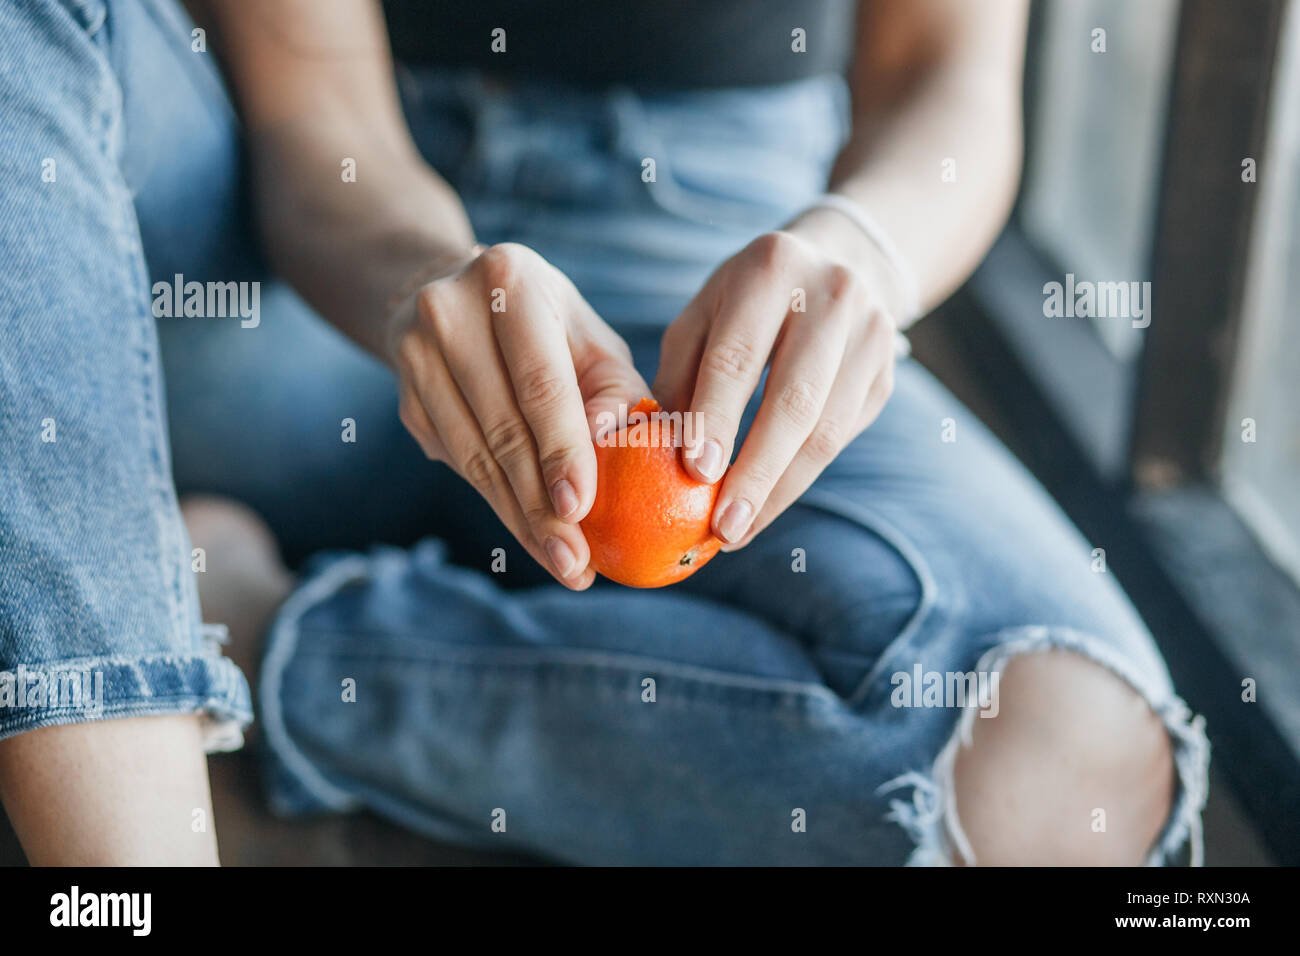 Young girl cleaning tangerine sitting on the windowsill. Close up hands with fresh orange tangerine. Stock Photo